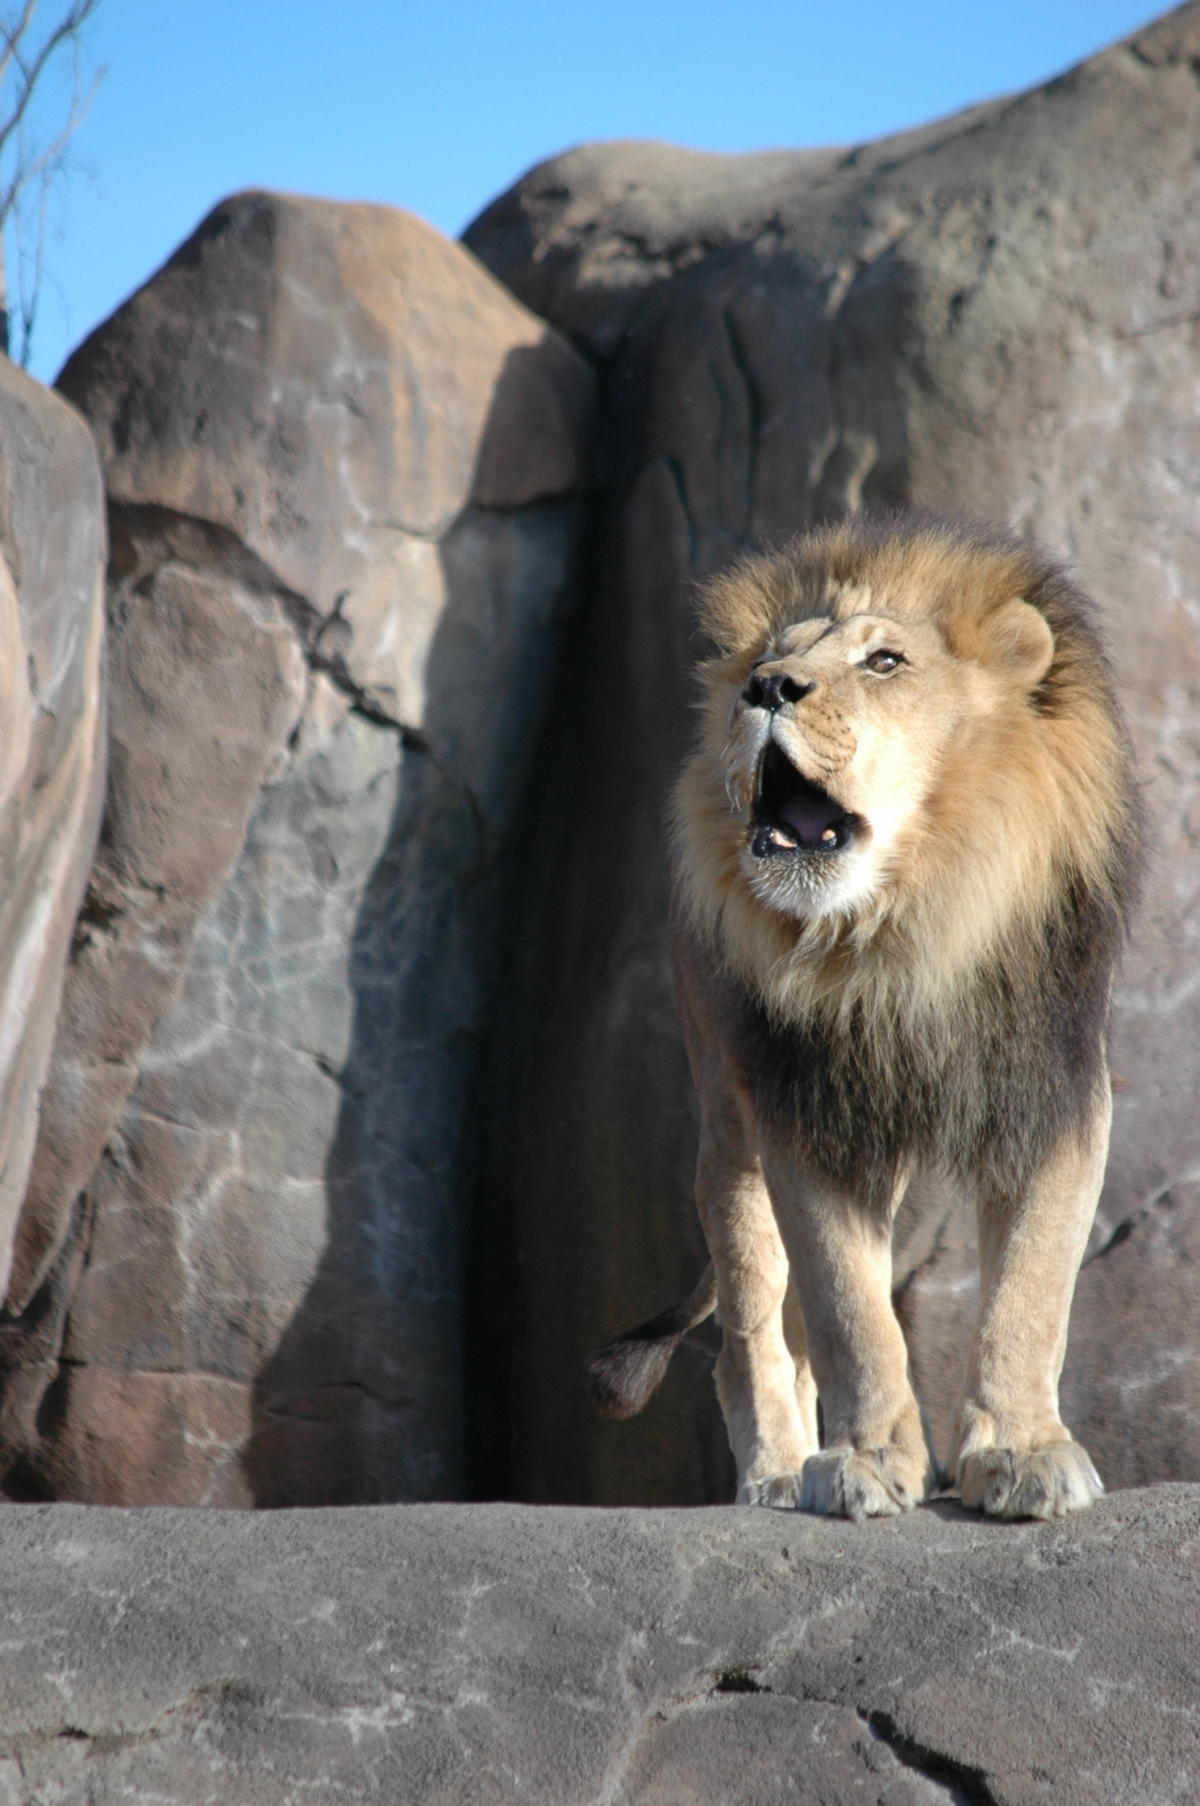 Roaring lion at the Sedgwick County Zoo, Wichita, KS